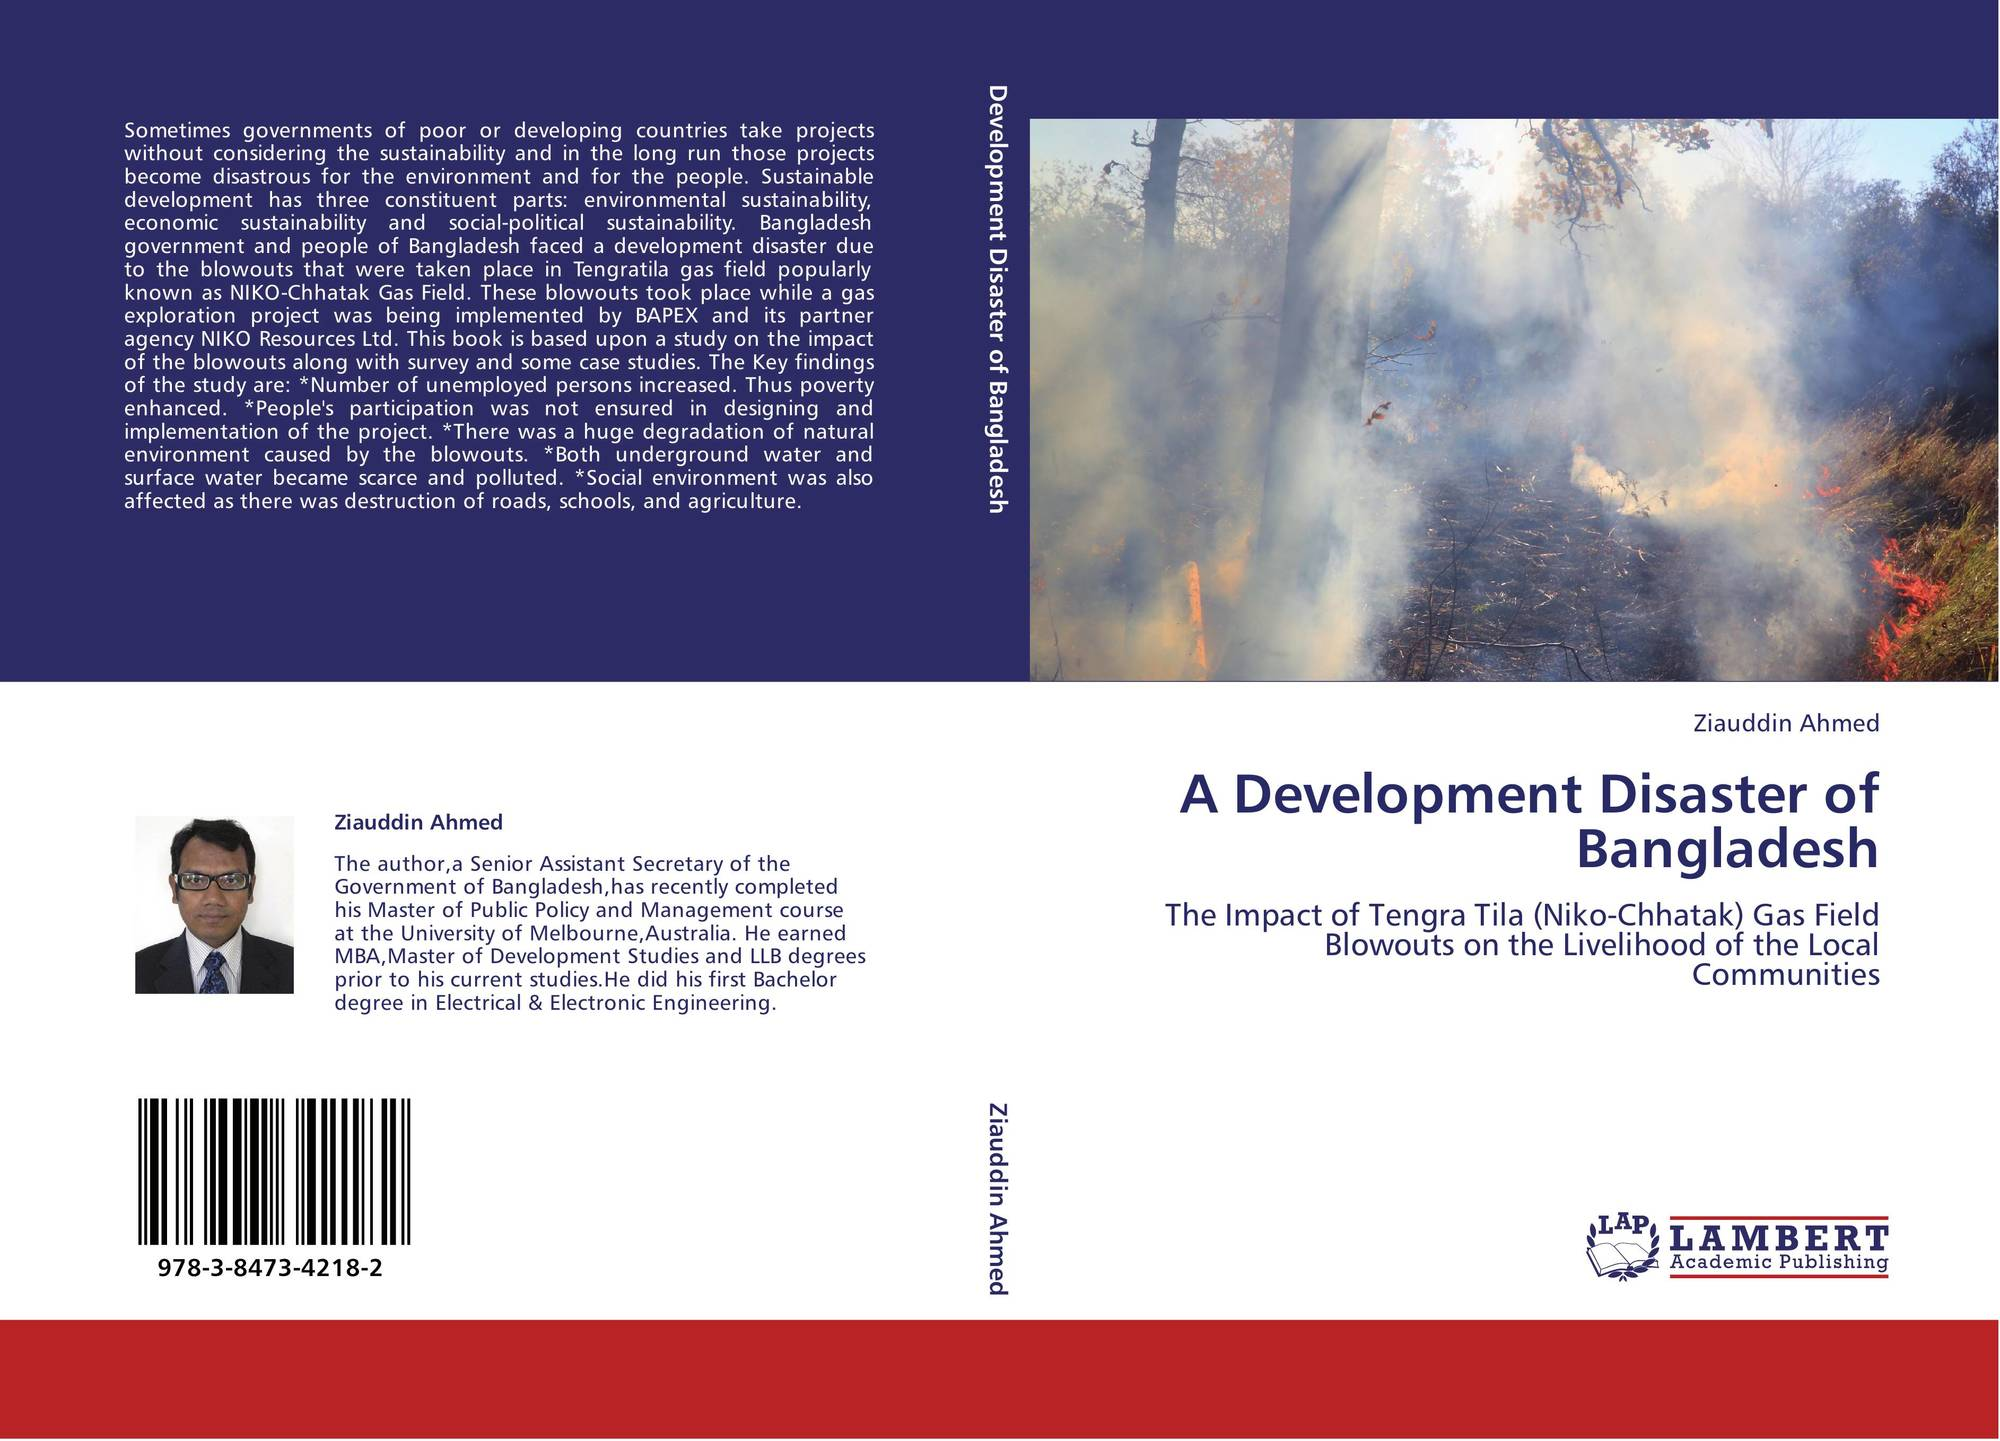 disaster of bangladesh Bangladesh experienced over 200 natural disasters since 1980, leaving a total death toll of approximately 200,000 people and causing economic loss worth nearly $17.